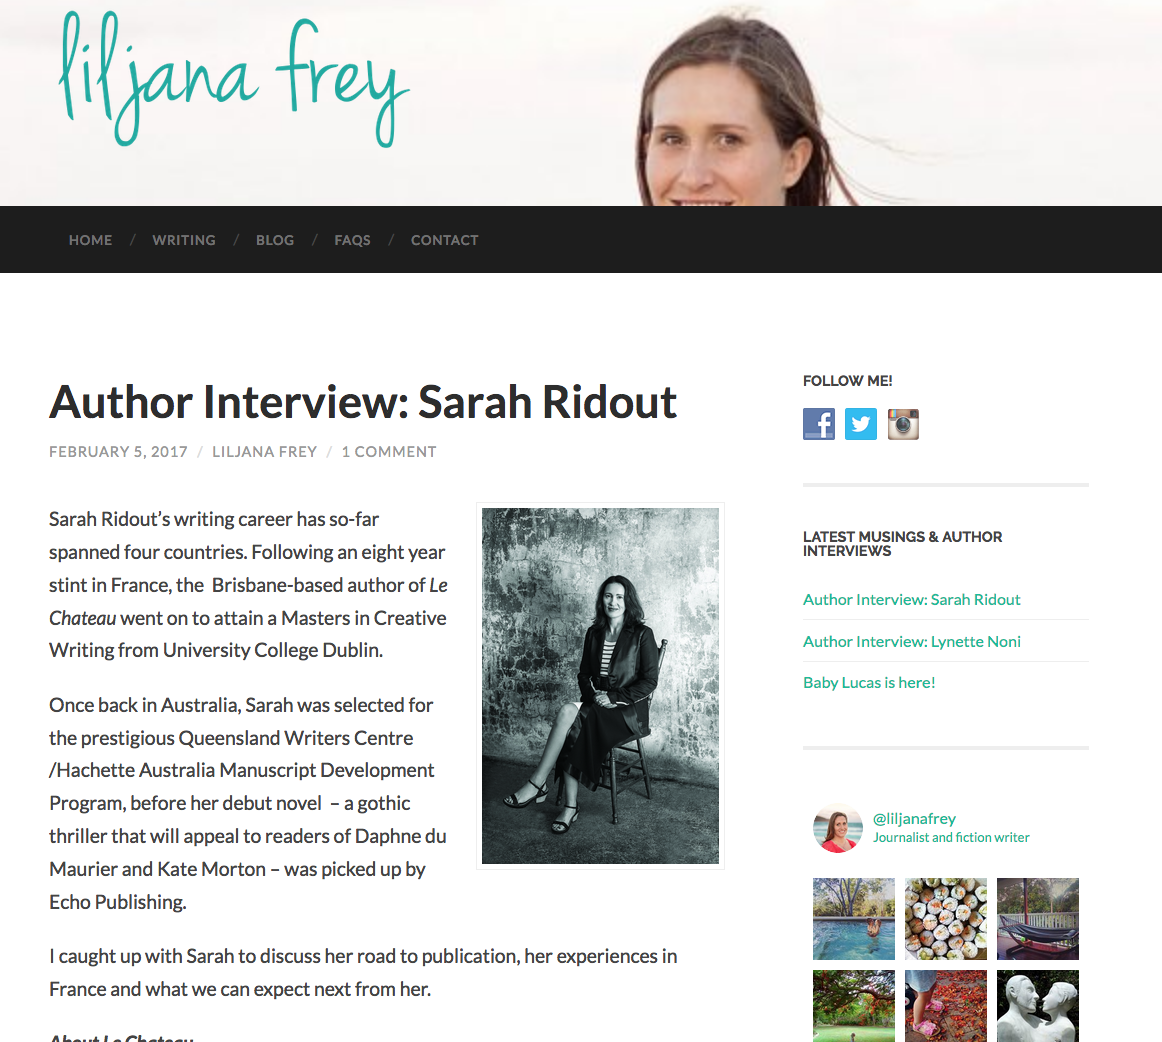 http://www.liljanafrey.com/author-interview-sarah-ridout/